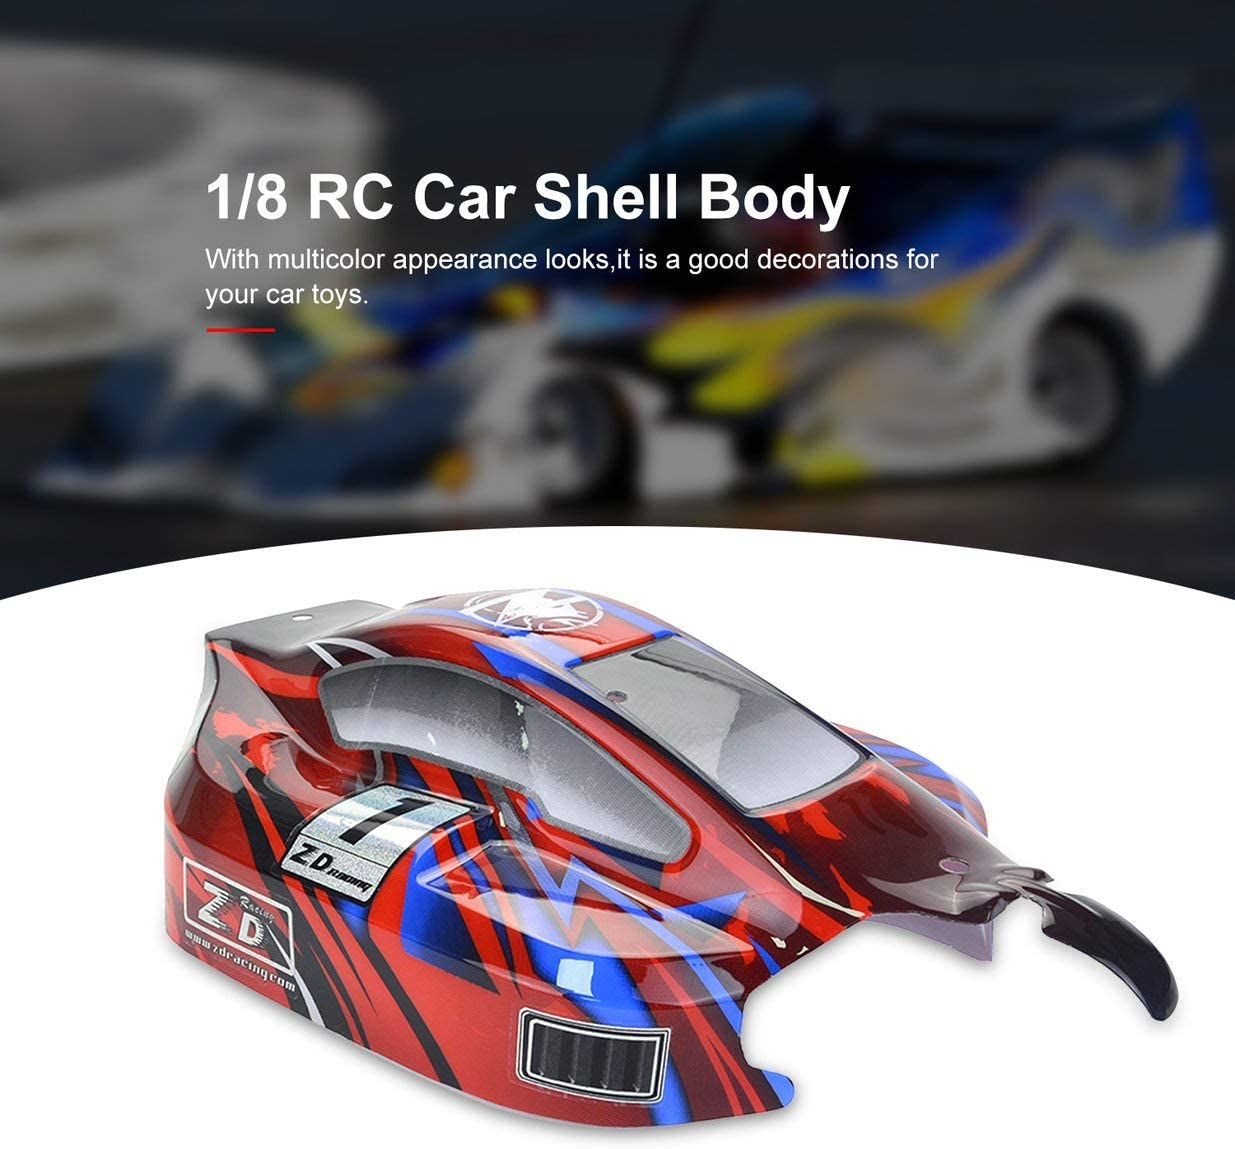 Spielzeug Chassis & Ersatzteile sumicorp.com Timetided RC On-Road ...